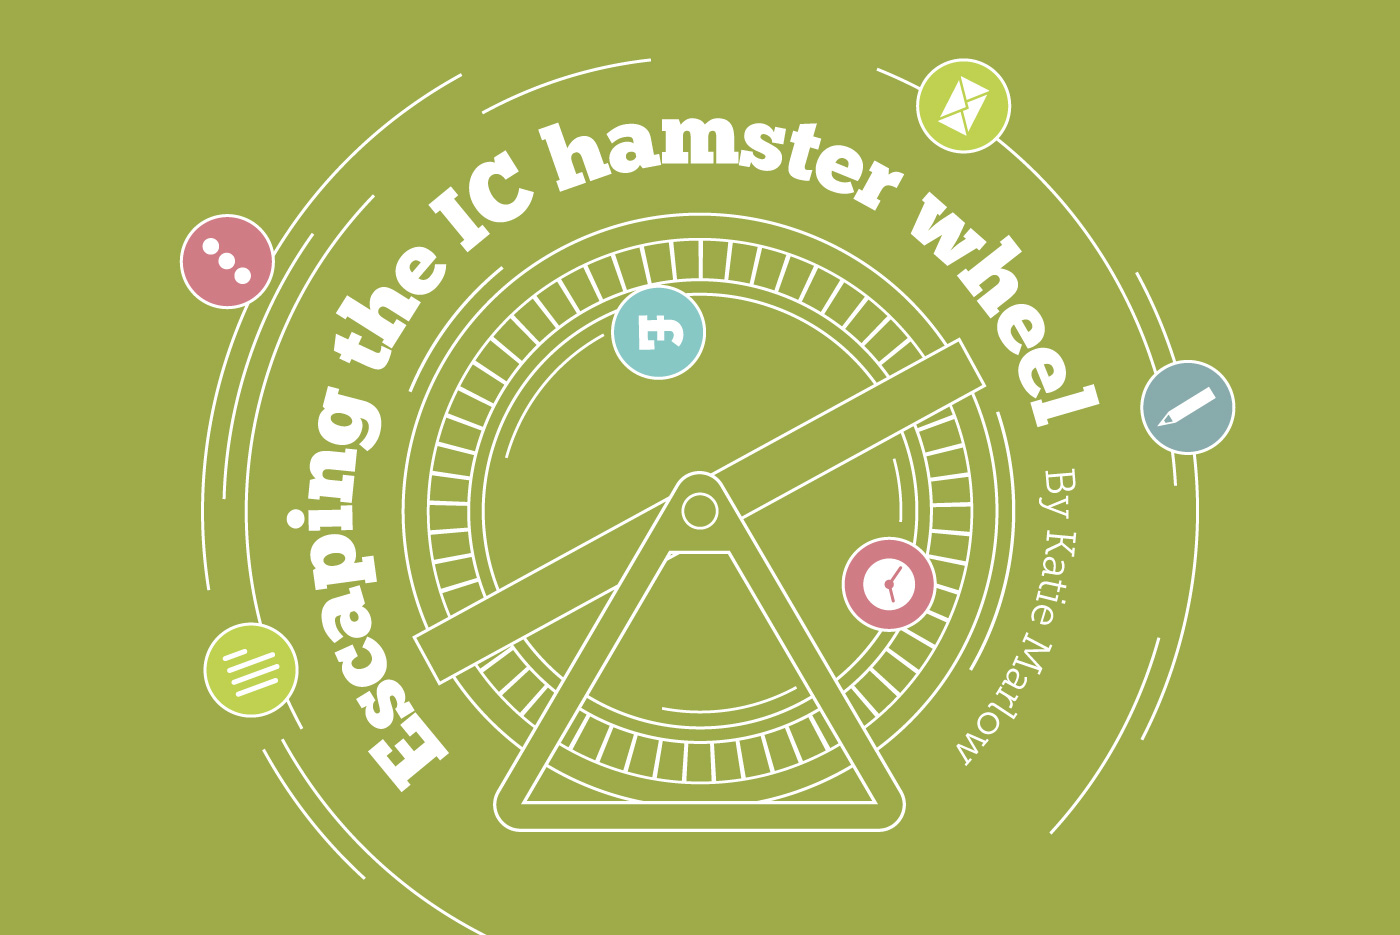 Escaping the IC hamster wheel article header